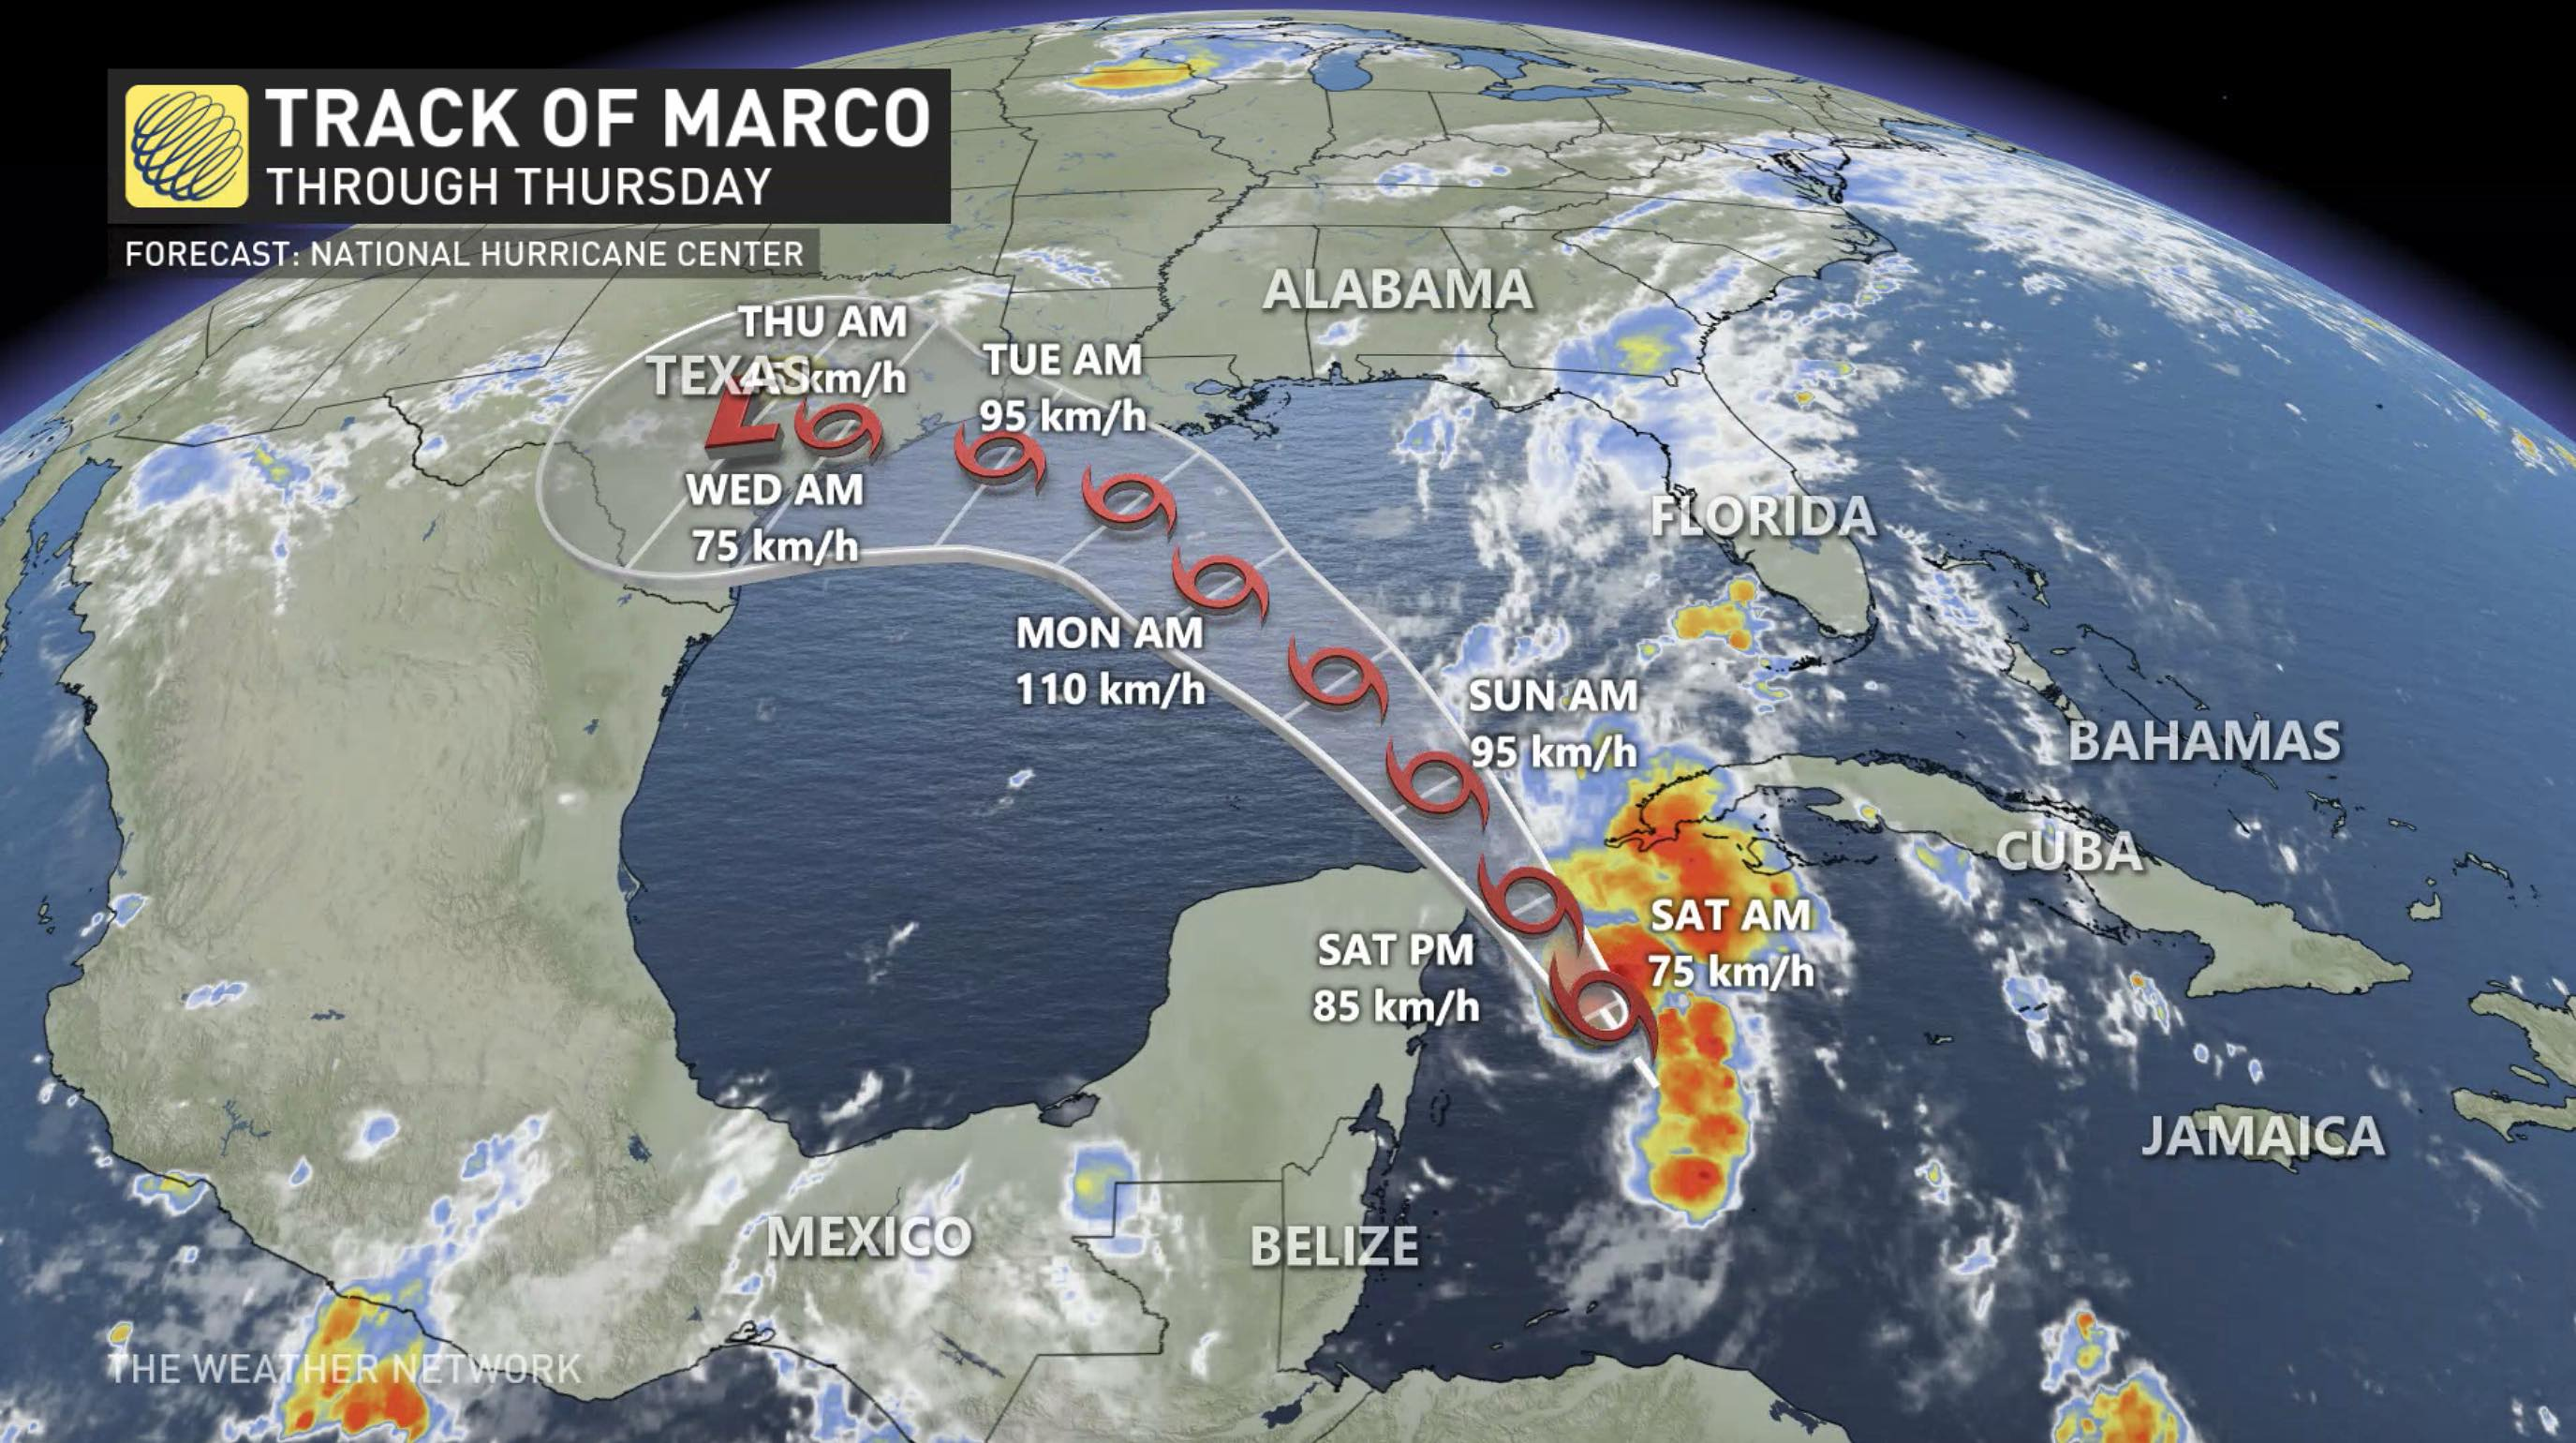 Hurricane watches issued along Gulf Coast as Marco strengthens